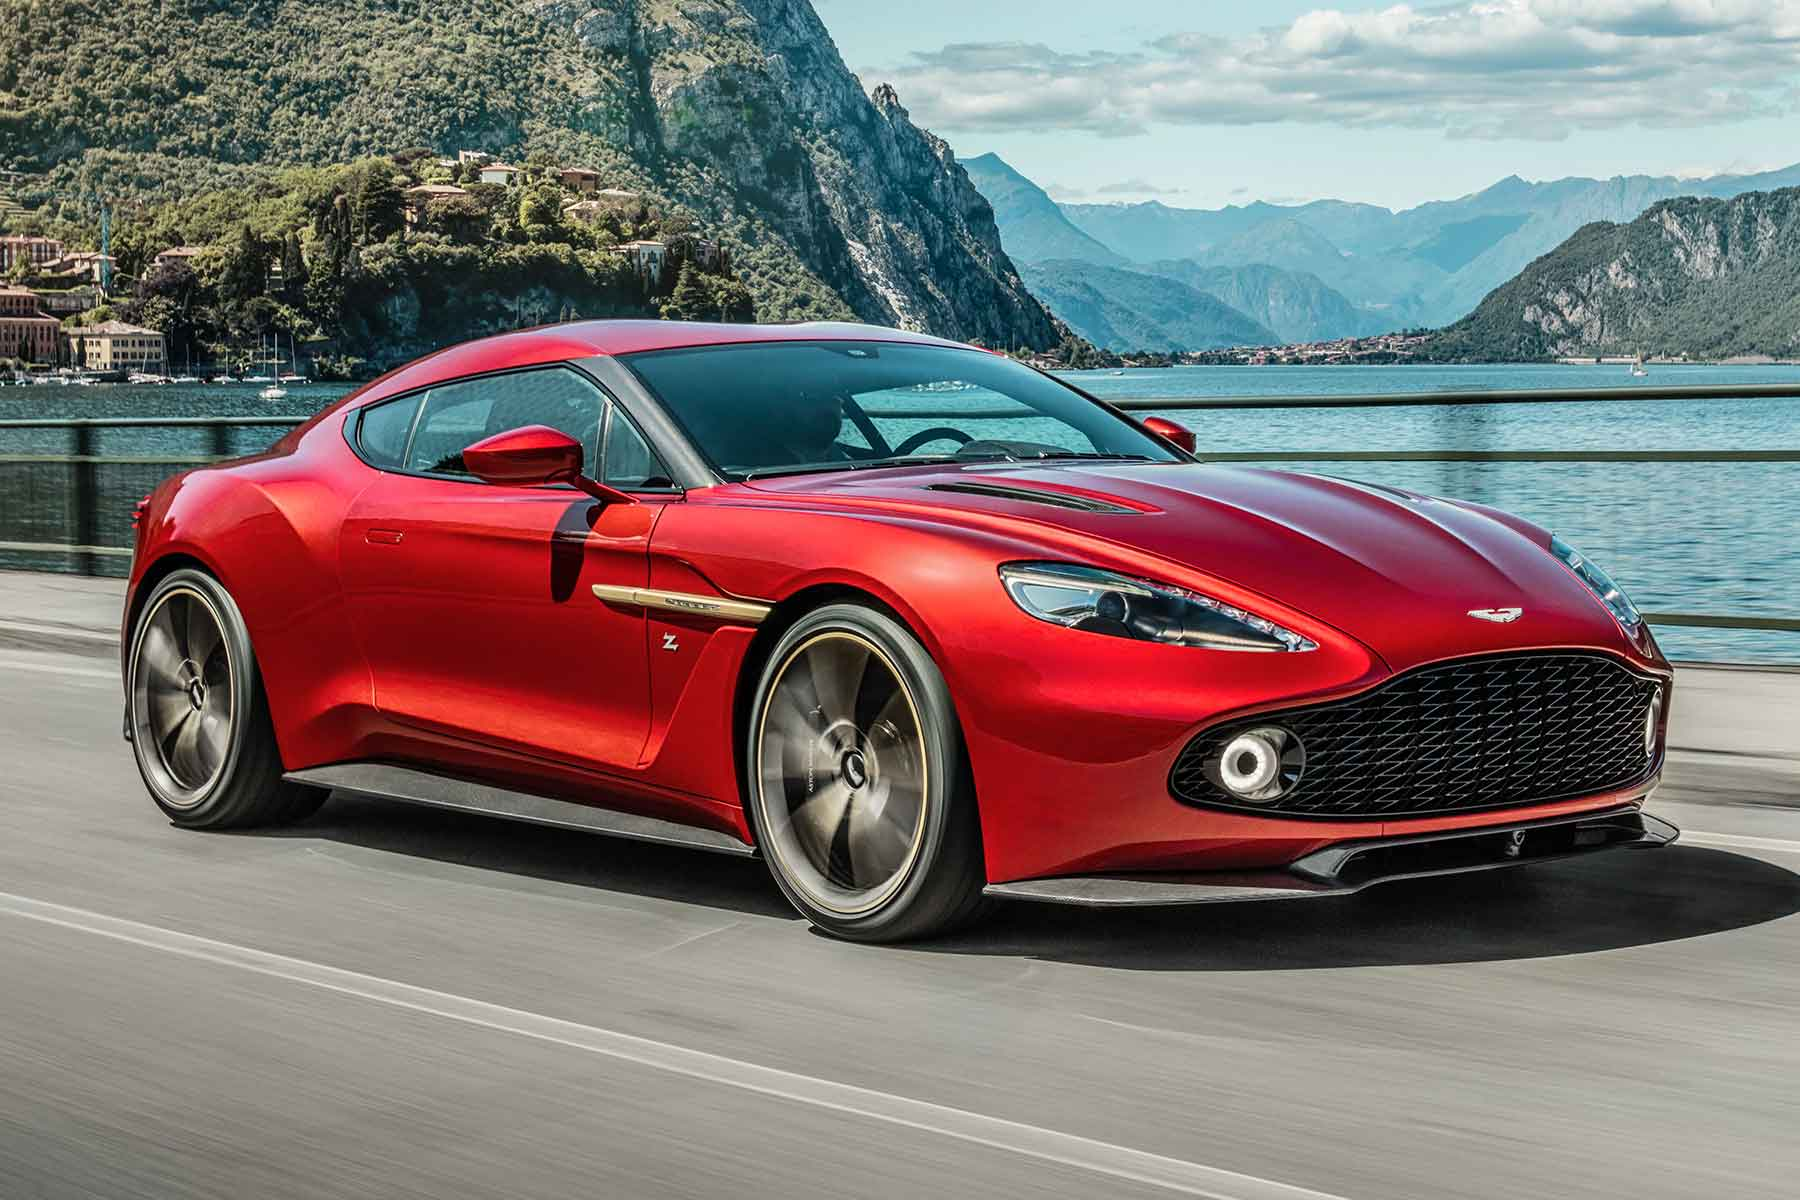 aston martin archives | page 2 of 10 | motoring research